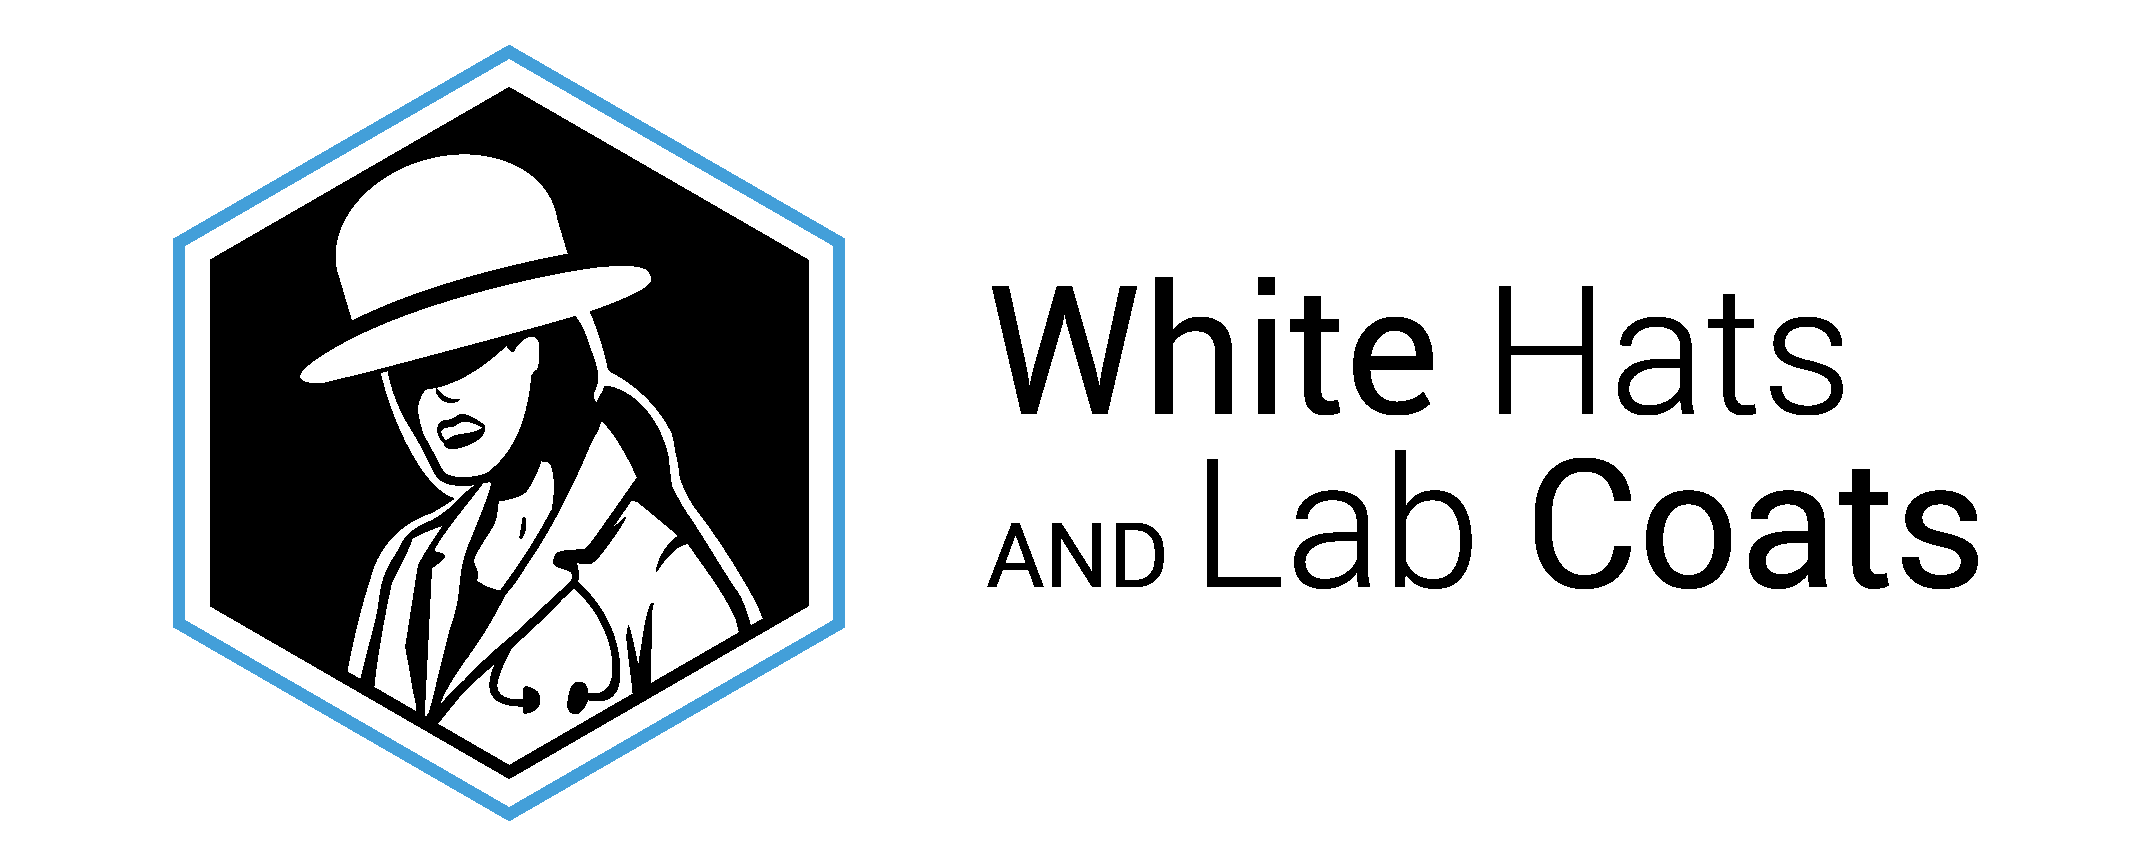 White Hats and Lab Coats logo